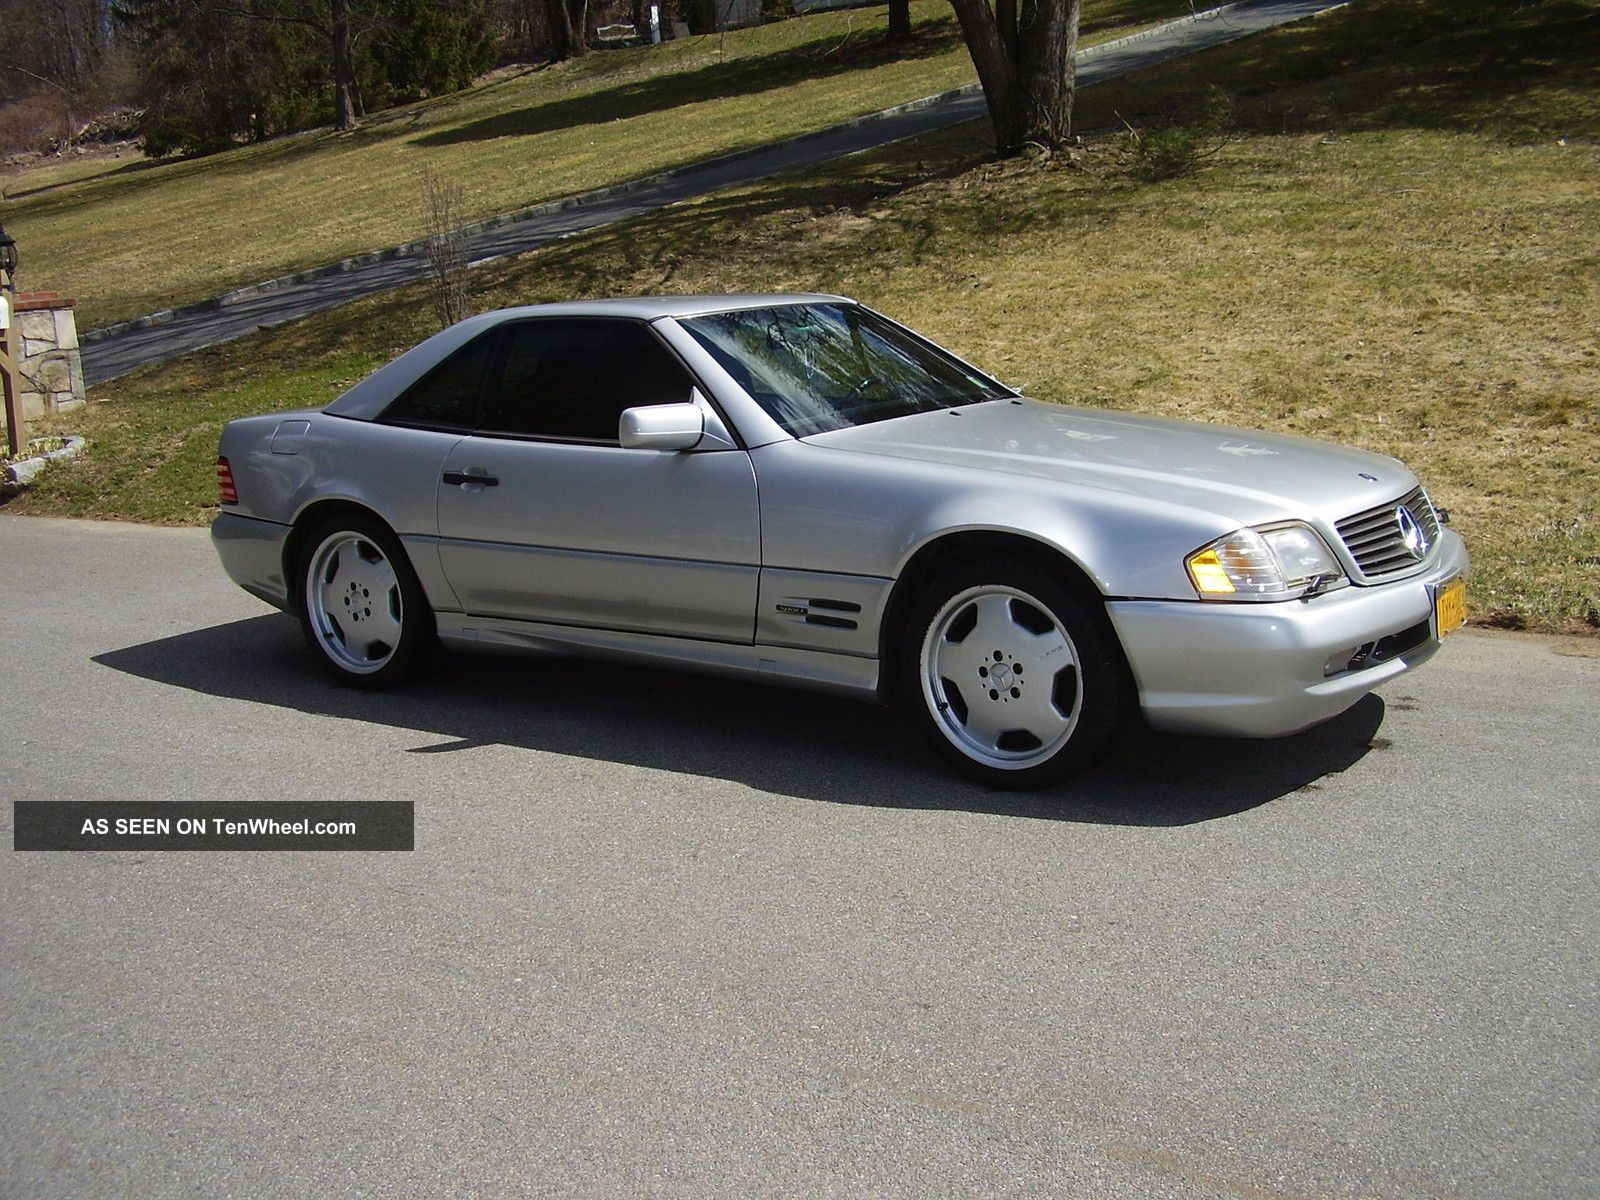 1998 mercedes benz sl class image 3 for 1998 mercedes benz sl500